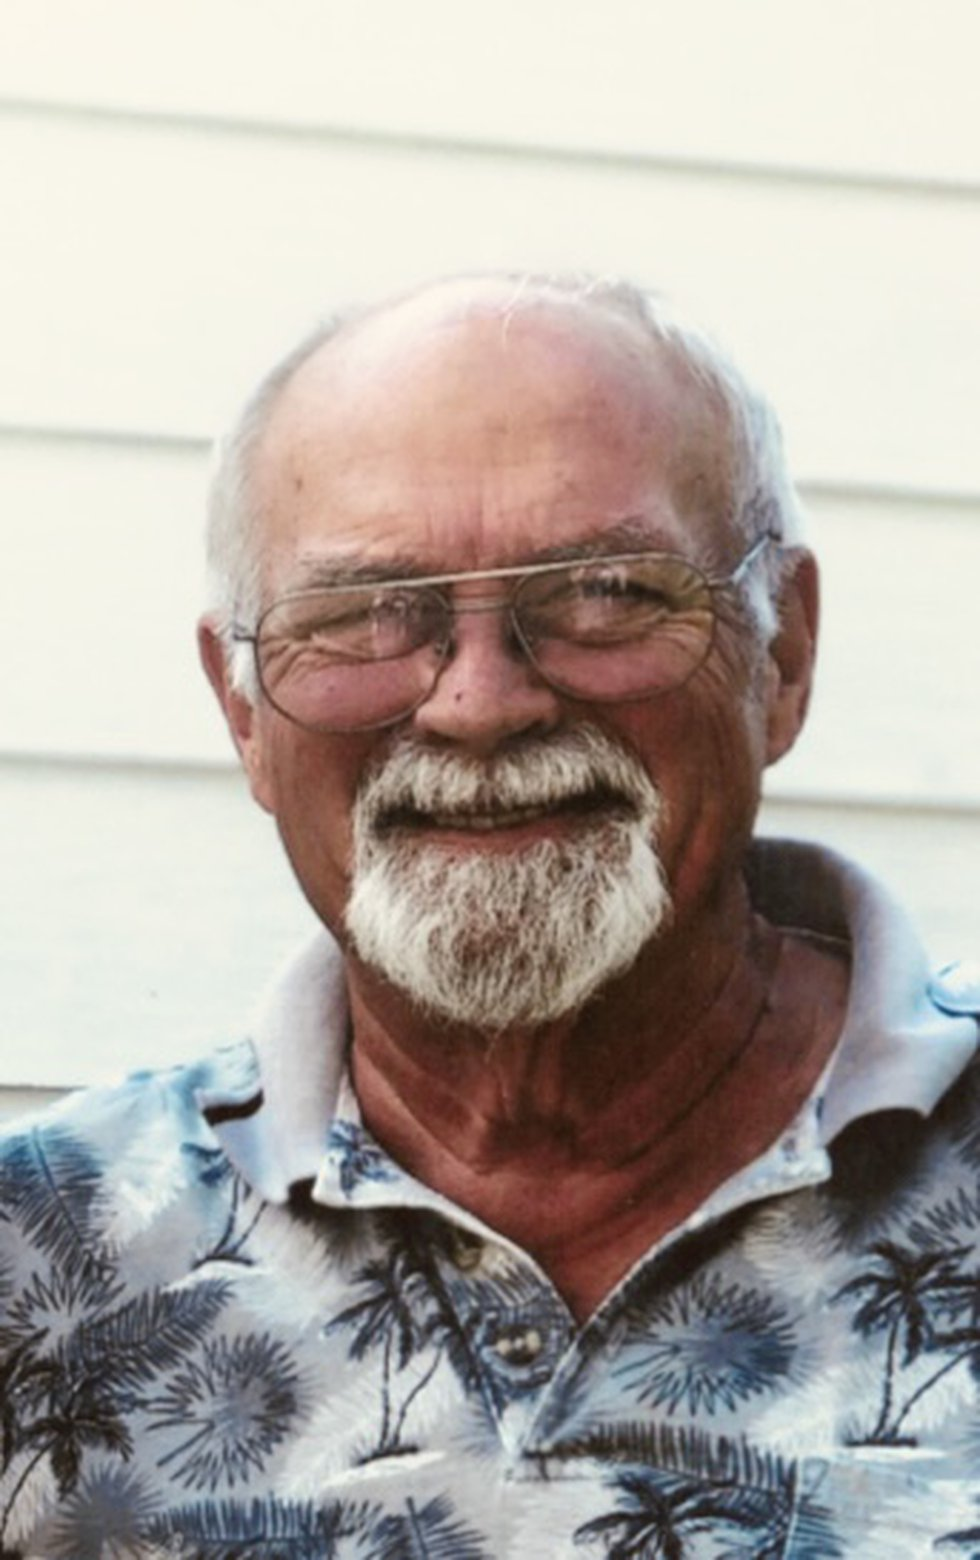 Bill passed away Friday, October 8th at Hospice of Jefferson County. He was 75 years old.